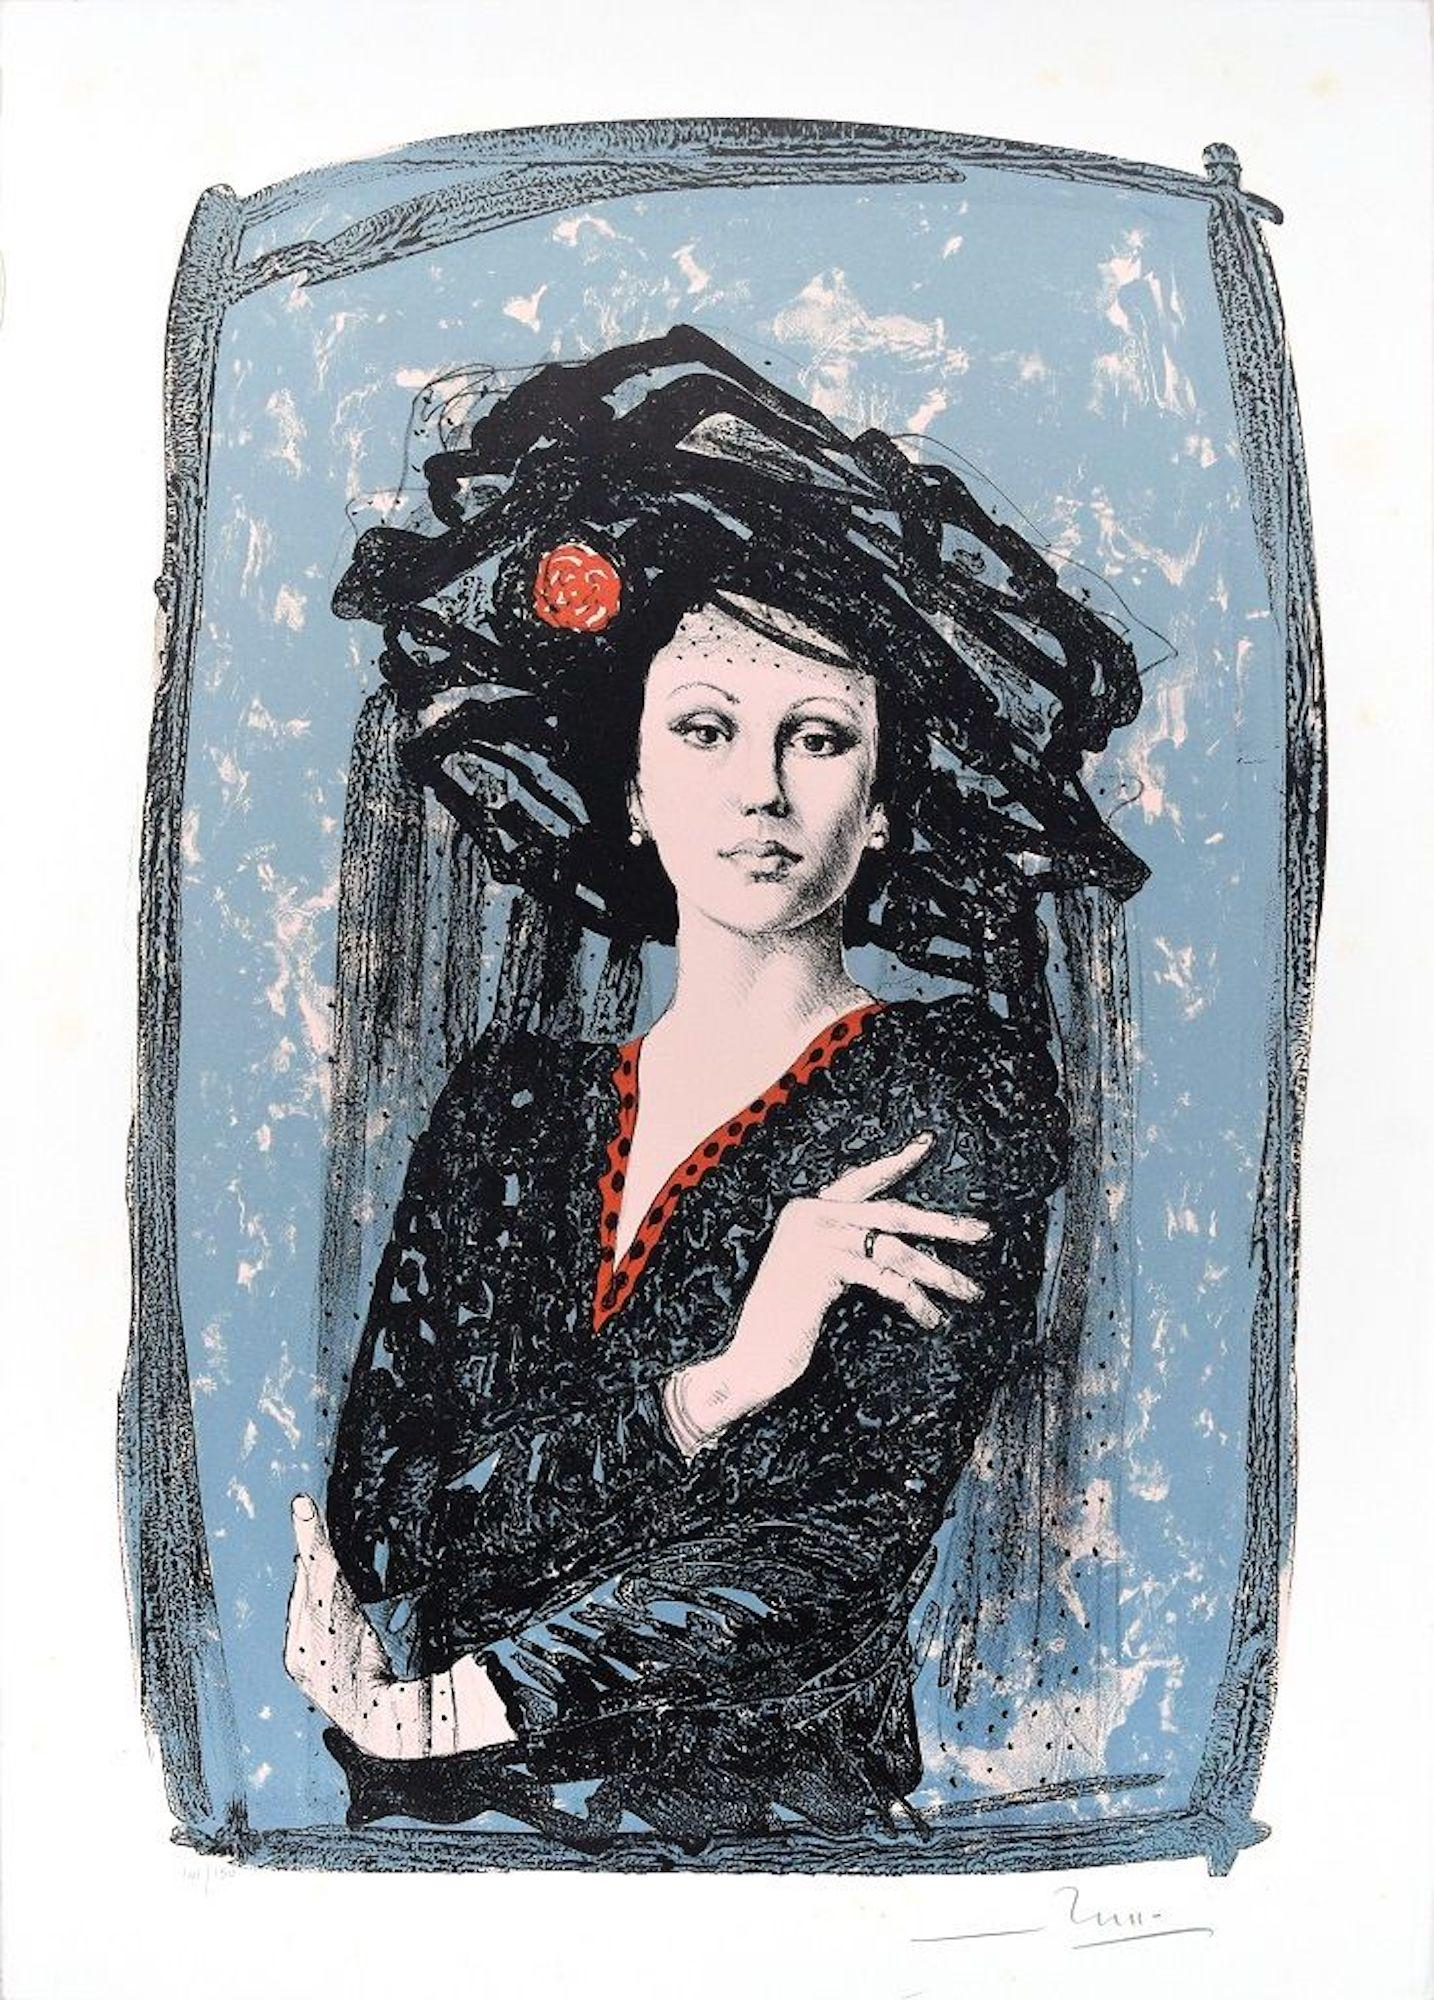 The Actress - Original Lithograph by Mario Russo - 1988